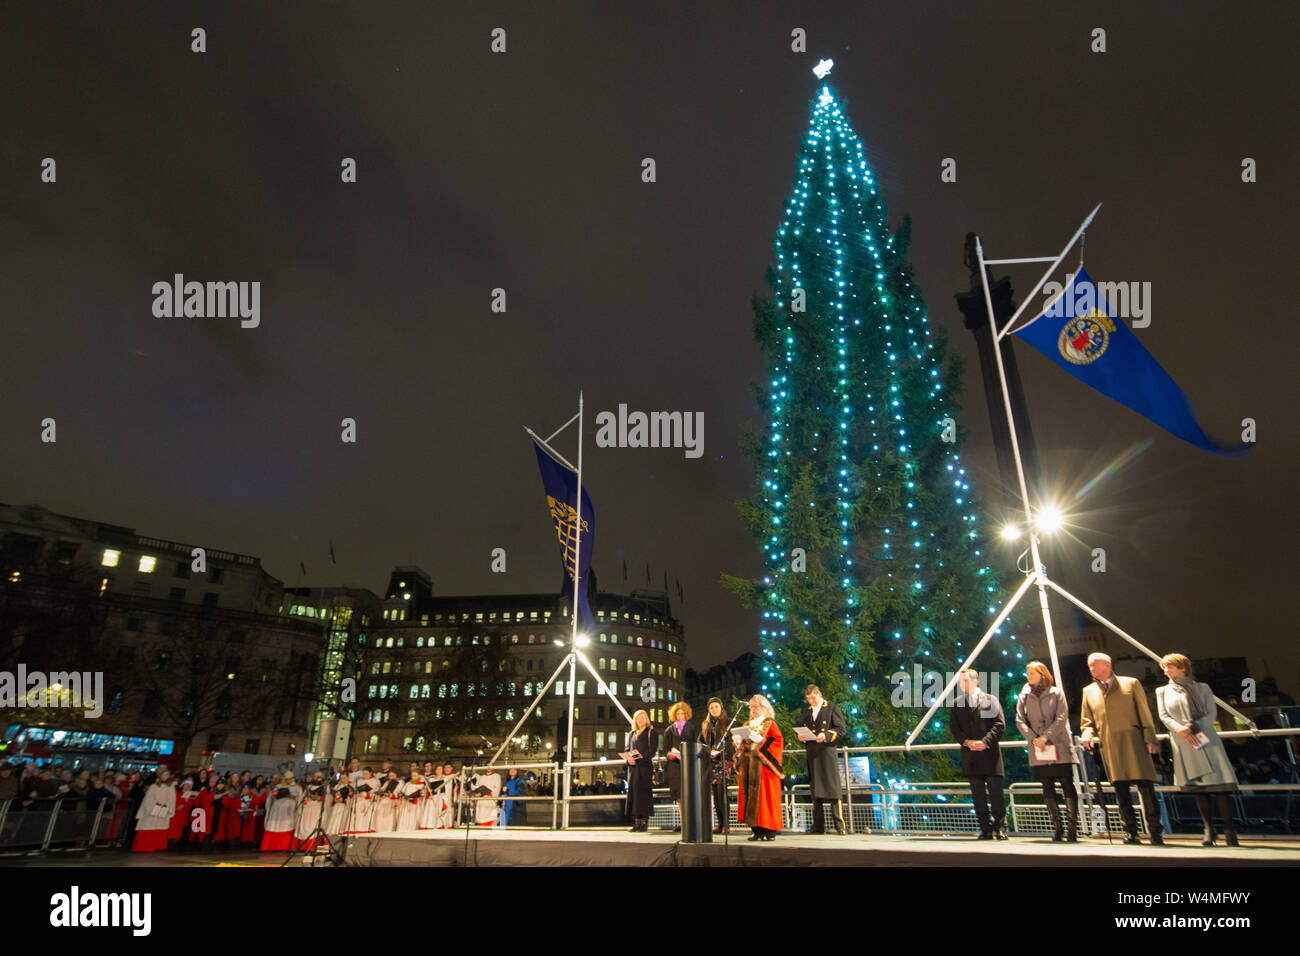 Londons Christmas Tree In Trafalgar Square Is Donated Each Year By Which Country.Trafalgar Square Christmas Tree Stock Photos Trafalgar